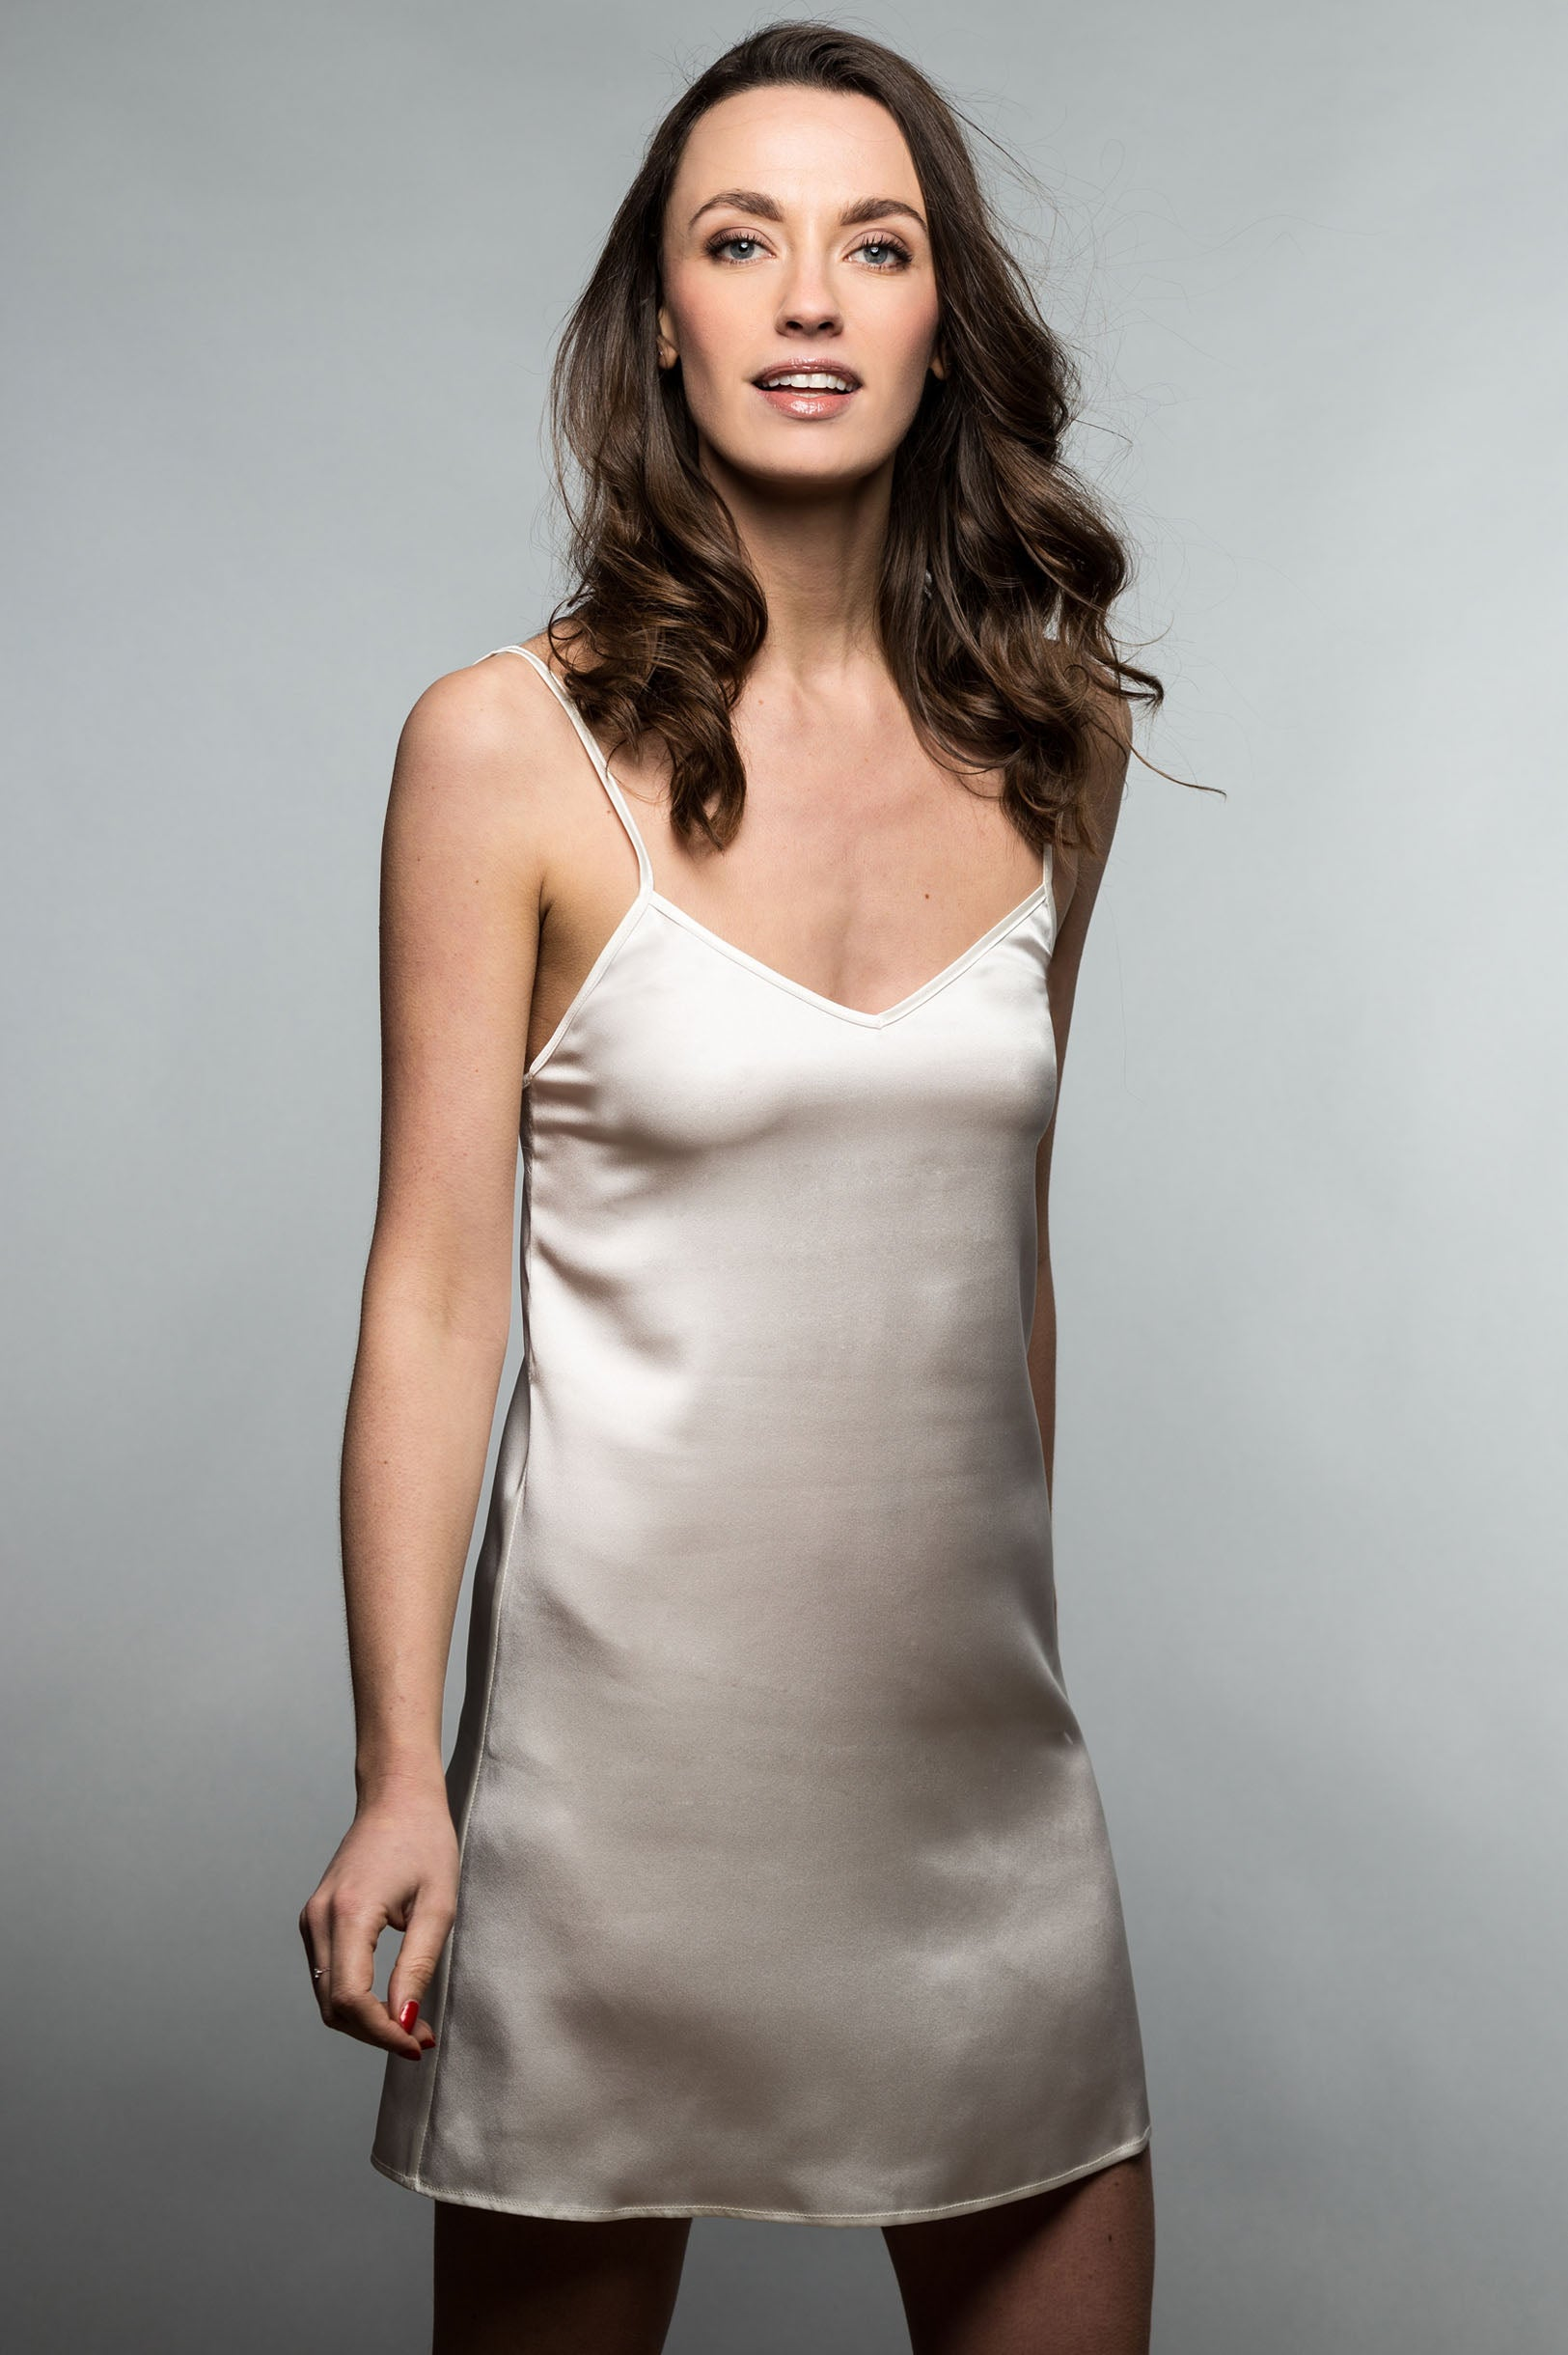 Parisienne Silk Satin Camisole Slip Dress Chemise in Ivory, Nude or Black